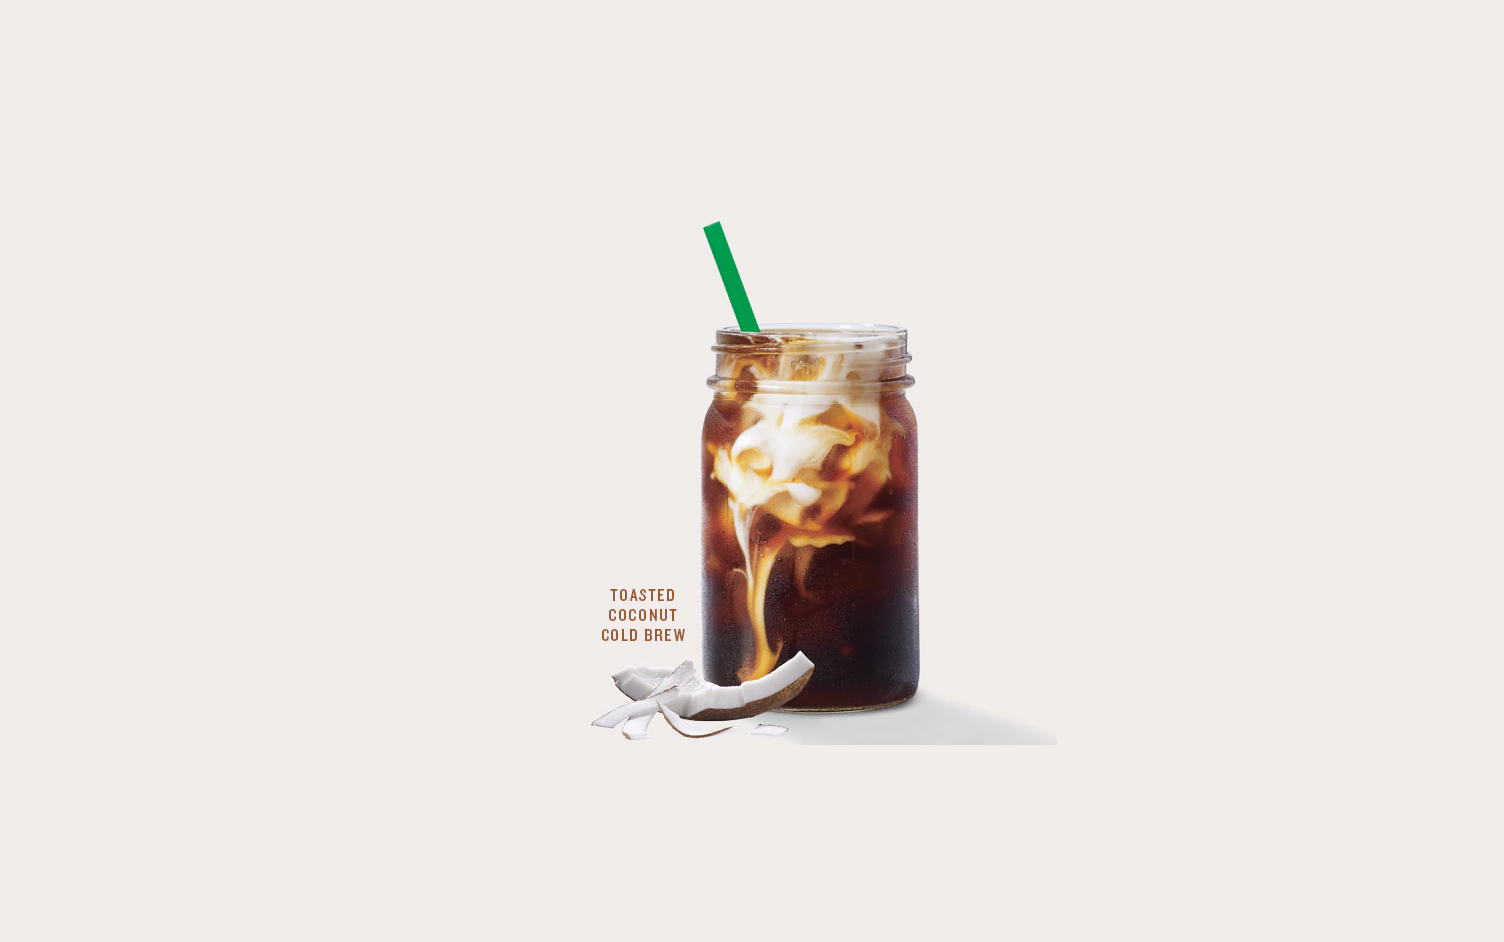 Starbucks Toasted Coconut Cold Brew Is Here